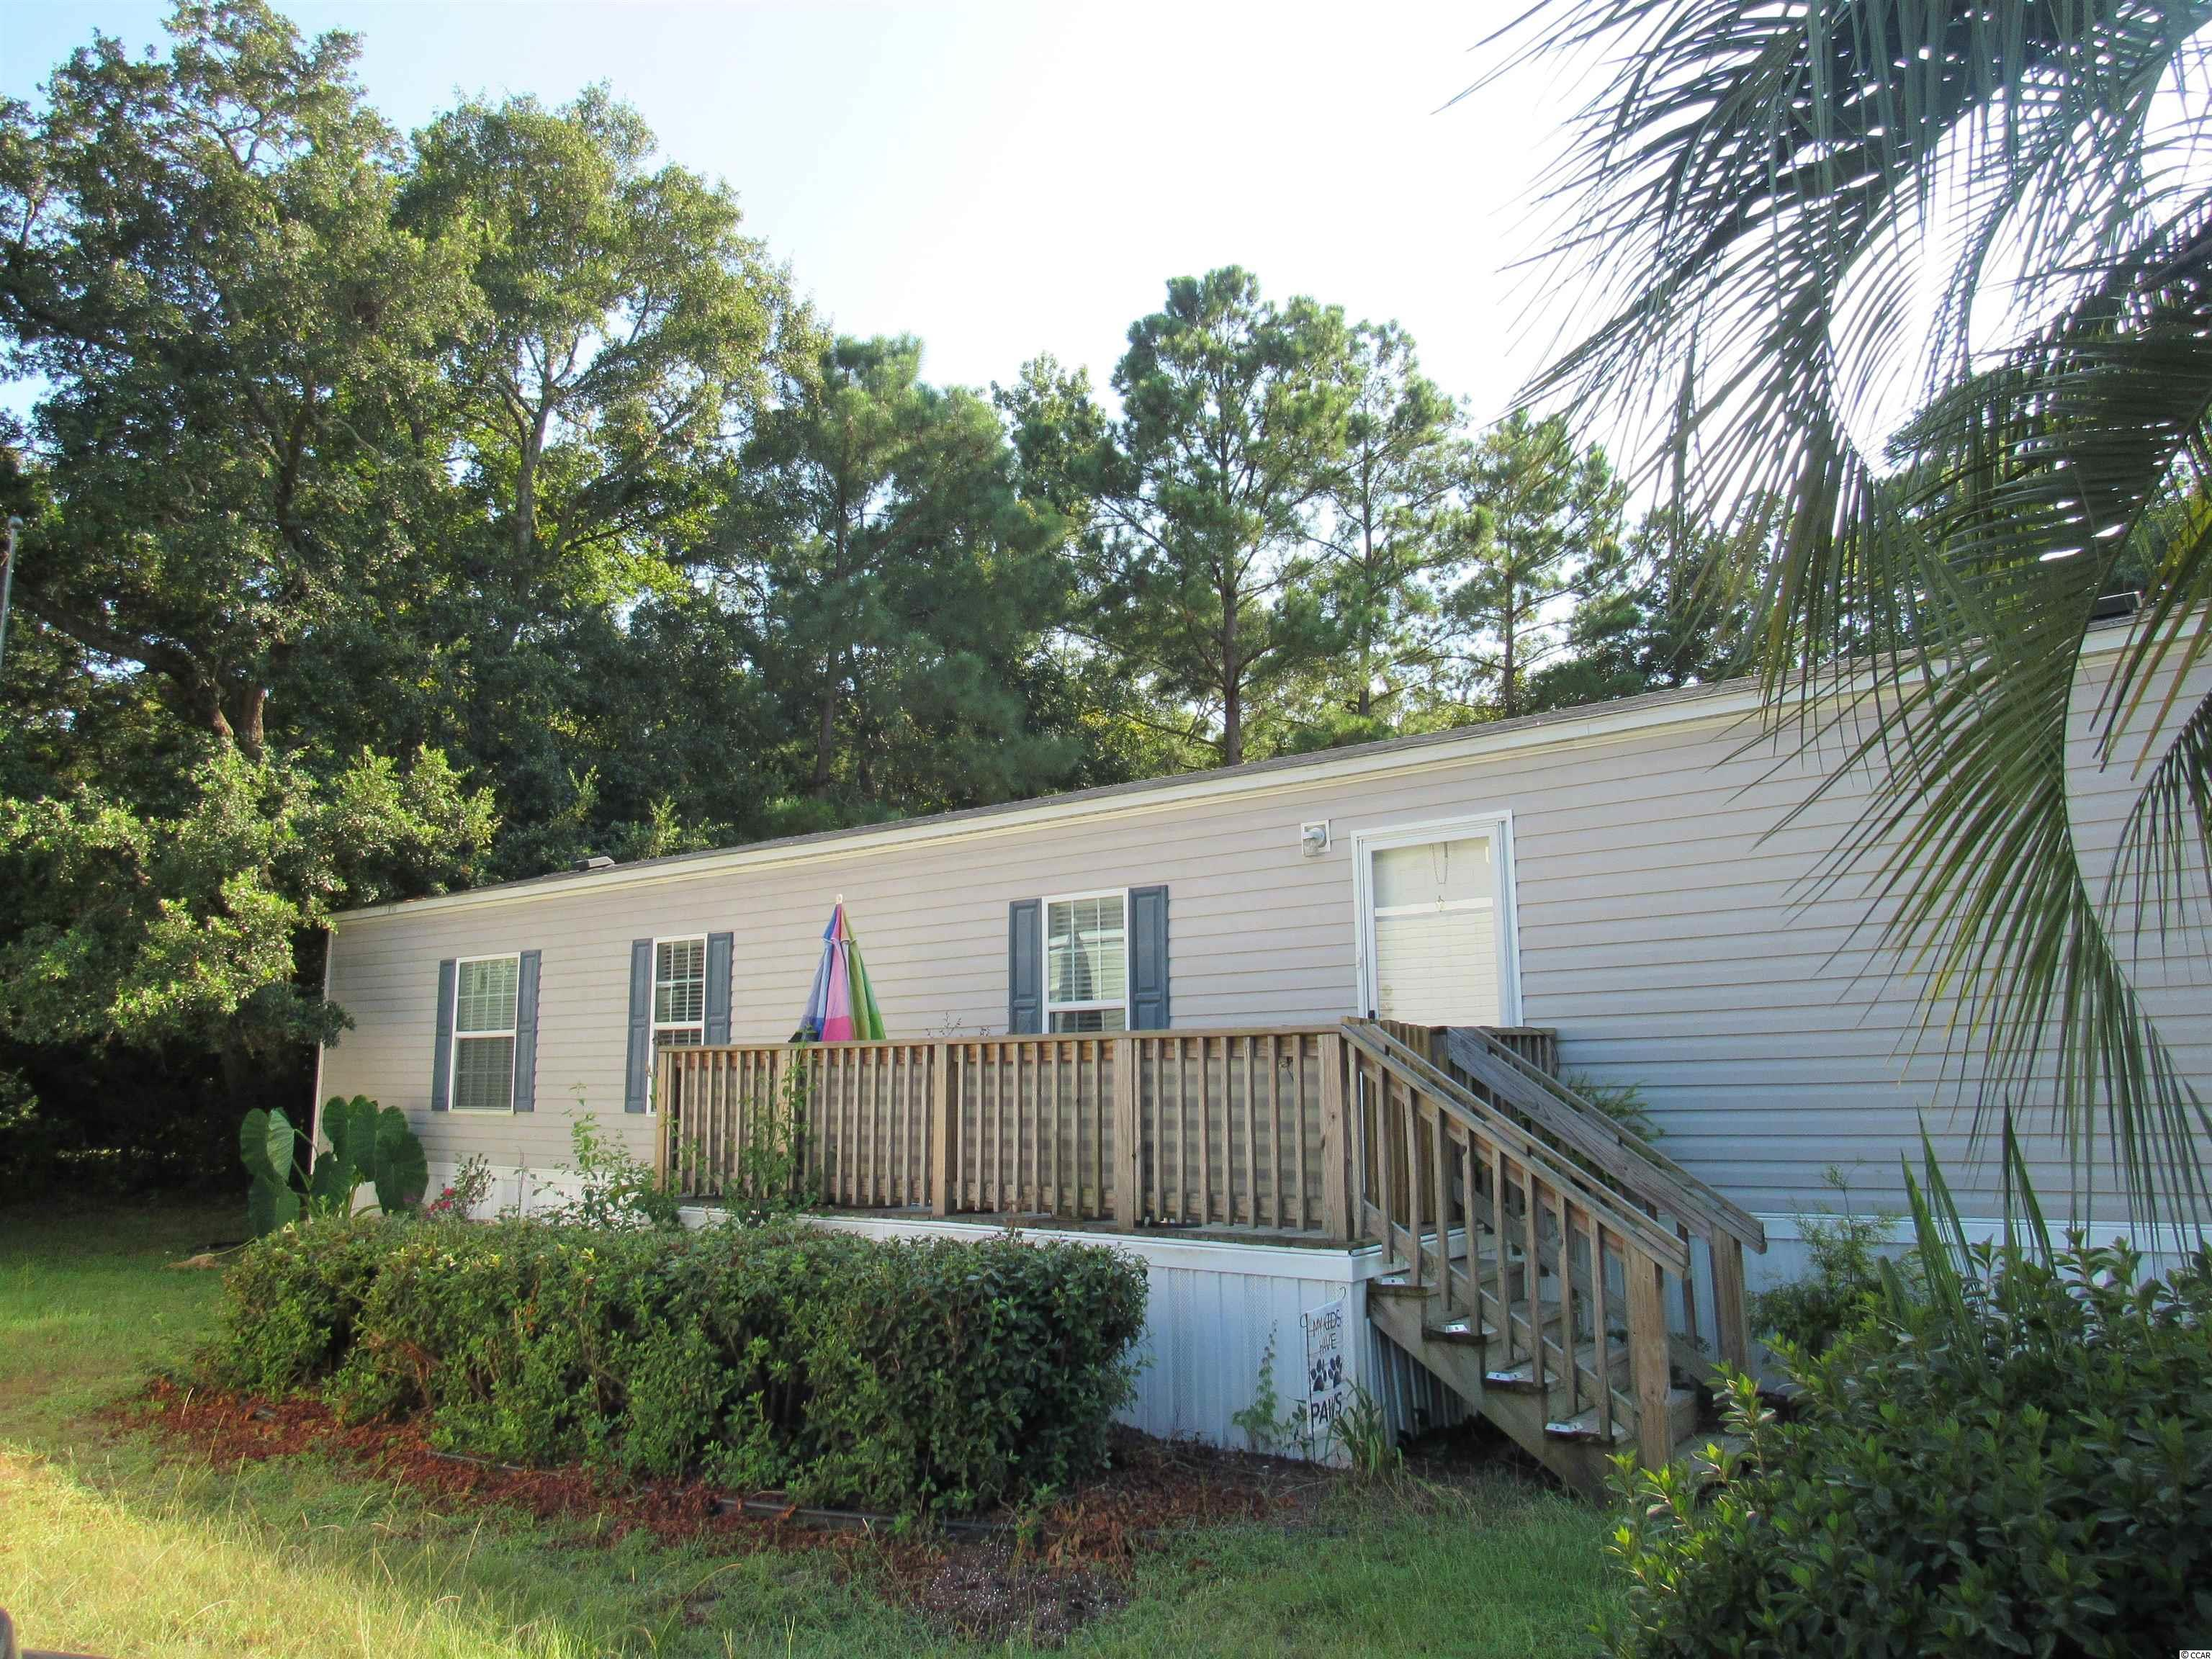 Live in the heart of Murrells Inlet! Your new home is only 6 years old, has 2 bedrooms, 2 baths and features a split bedroom floor plan with an open layout.The kitchen overlooks the living area, has plenty of counter/cabinet space, a breakfast bar and double stainless steel sink. The separate laundry room is just off the kitchen and has a full sized washer and dryer. Your master bedroom is spacious and private with an en suite bath. The second bedroom offers it's own privacy on the other end of the home with a full bath just around the corner. And comes partially furnished! The living room is cozy with plenty of room for everyone! Outside are newly landscaped flowerbeds and an oversized front deck-perfect for enjoying the sunshine! Key Largo is a quiet community within walking distance to the MarshWalk and a short golf cart ride to fine waterfront dining and entertainment! This home would also make the perfect vacation home.....schedule your showing today! Home is on leased land.